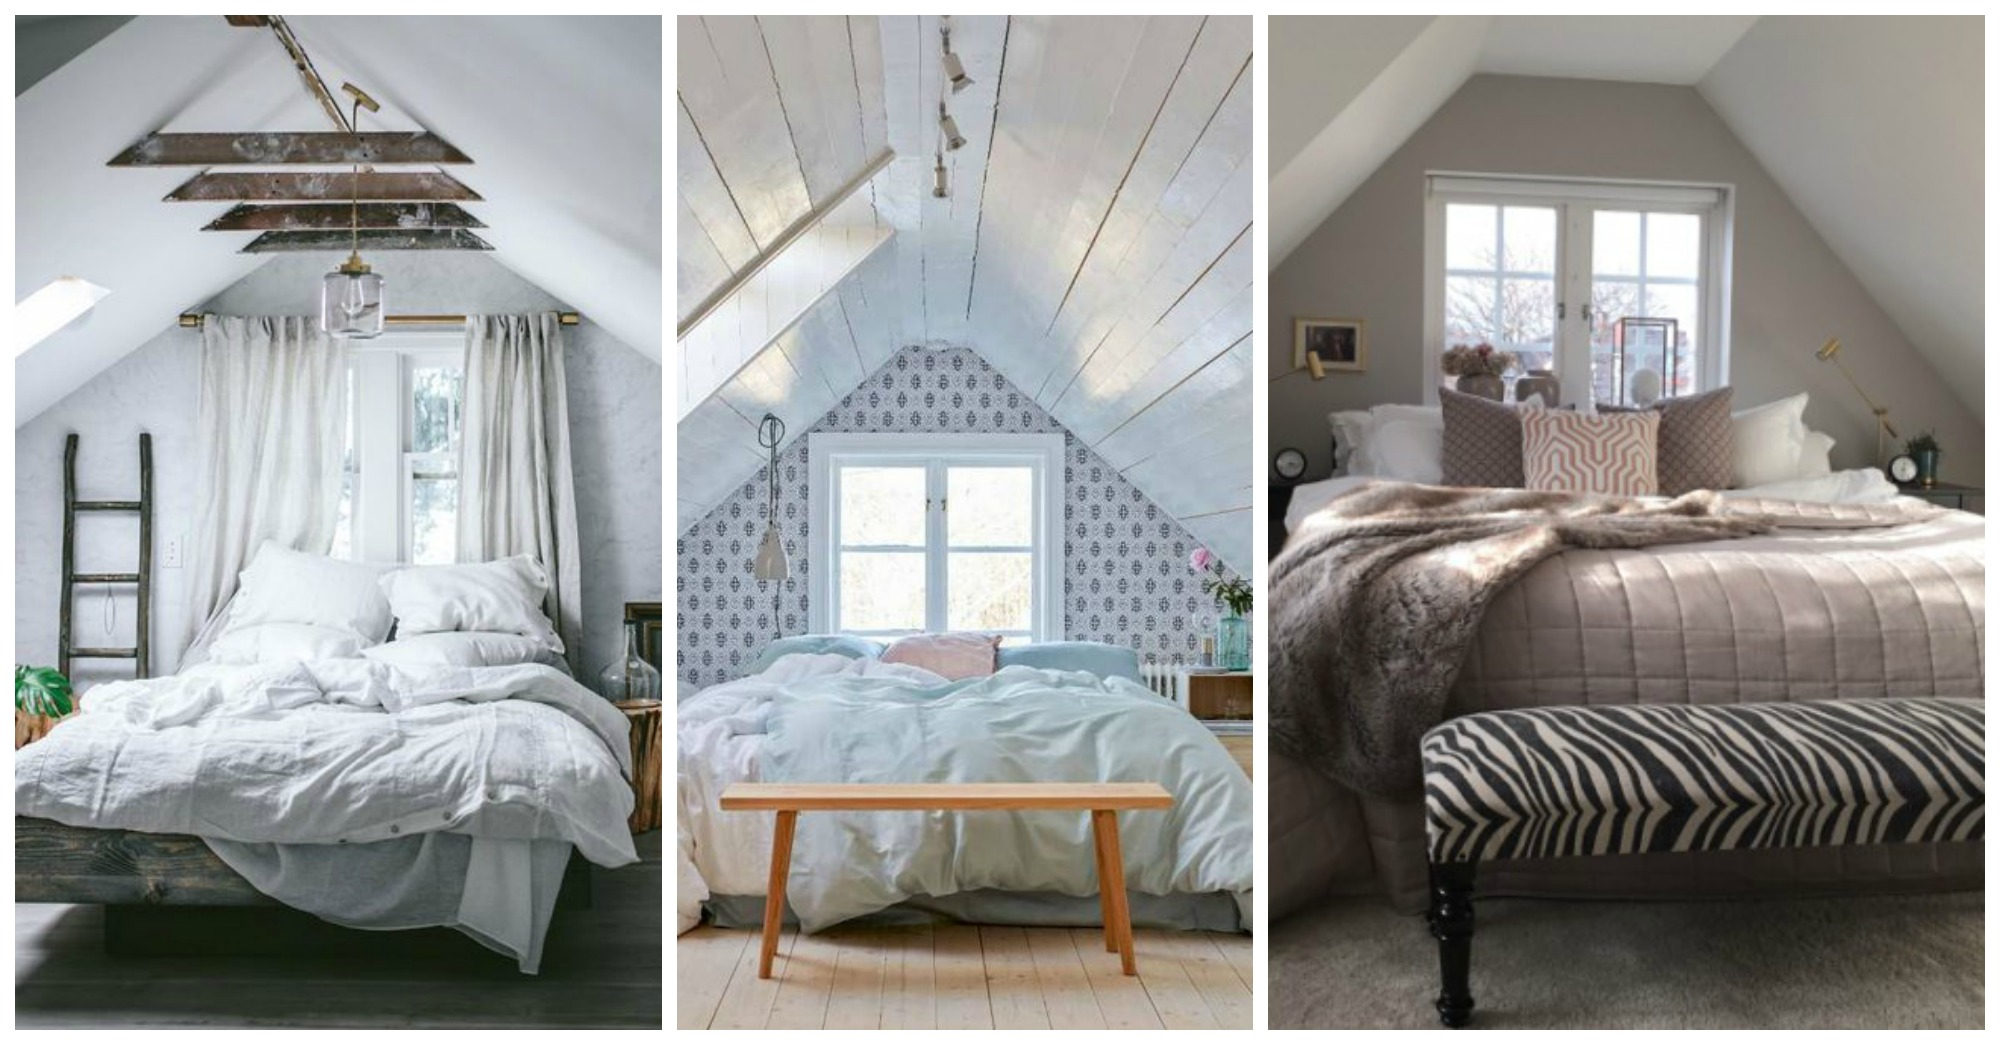 Smart Tips for Decorating Attic Bedrooms